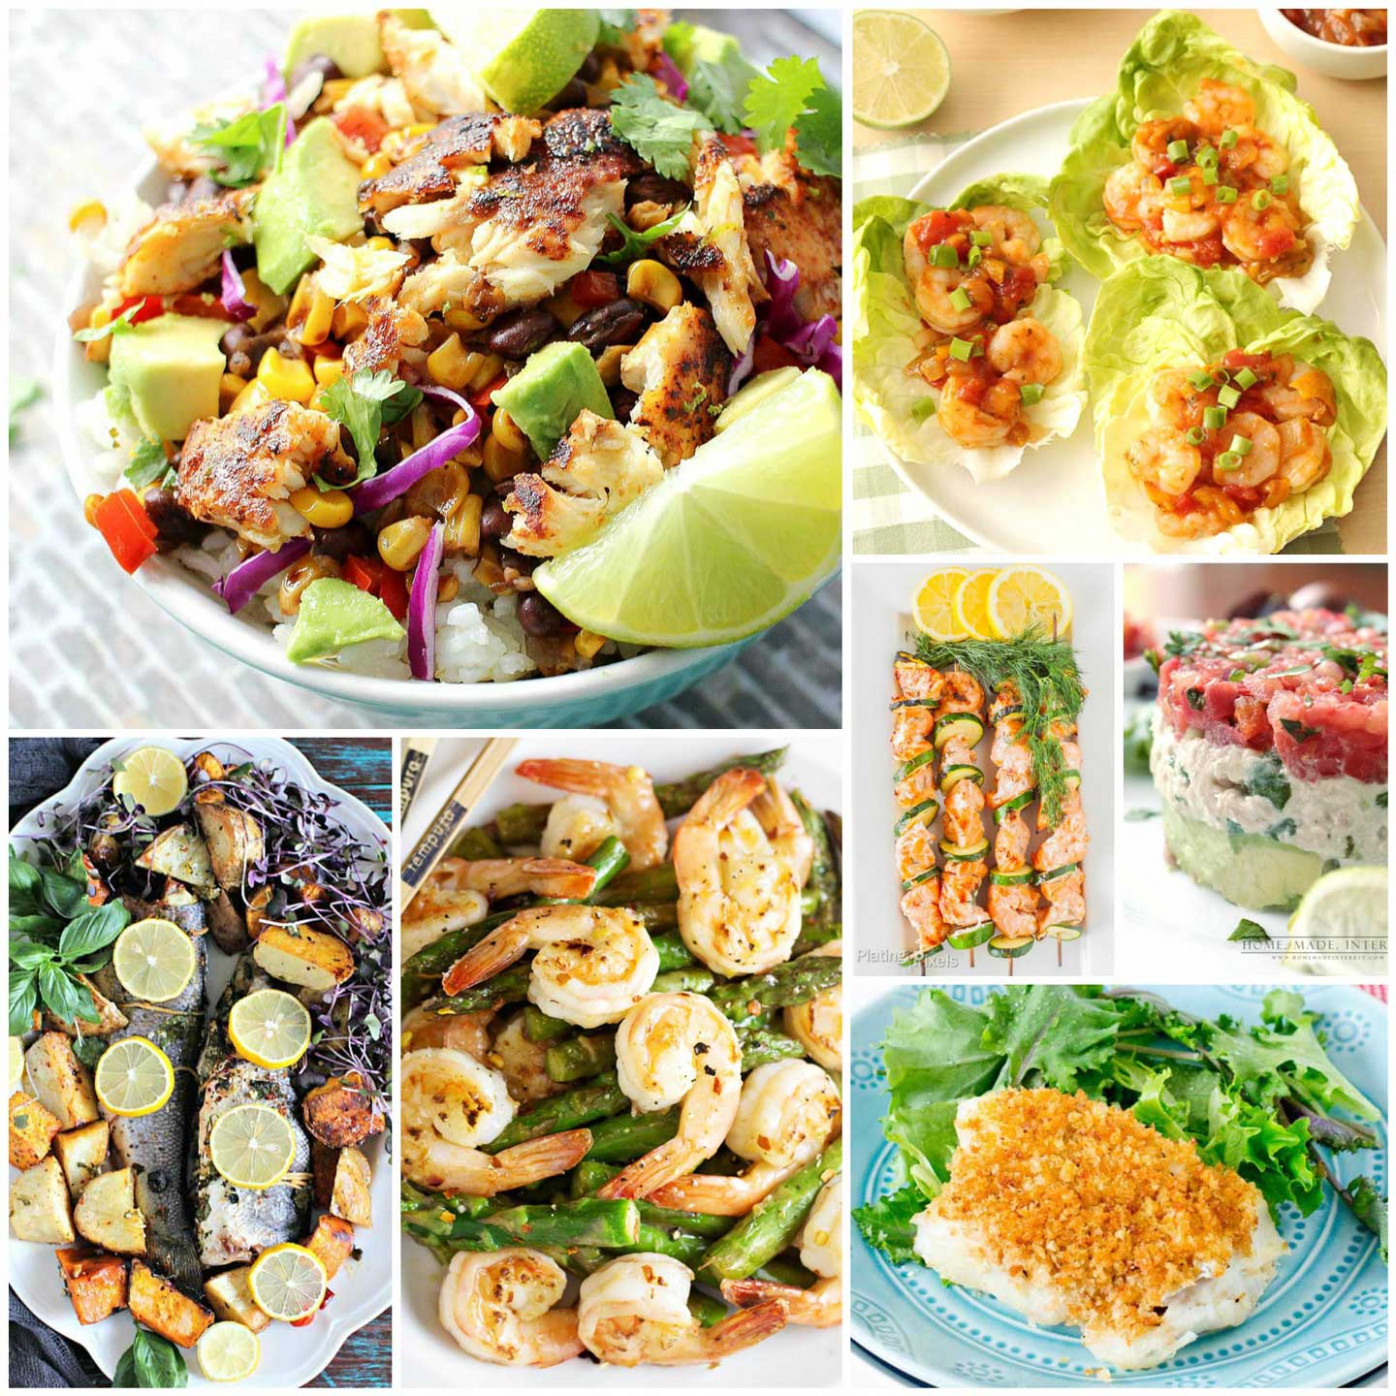 15 All-Time Best Healthy, Easy Seafood and Fish Recipes - fish recipes dinner party